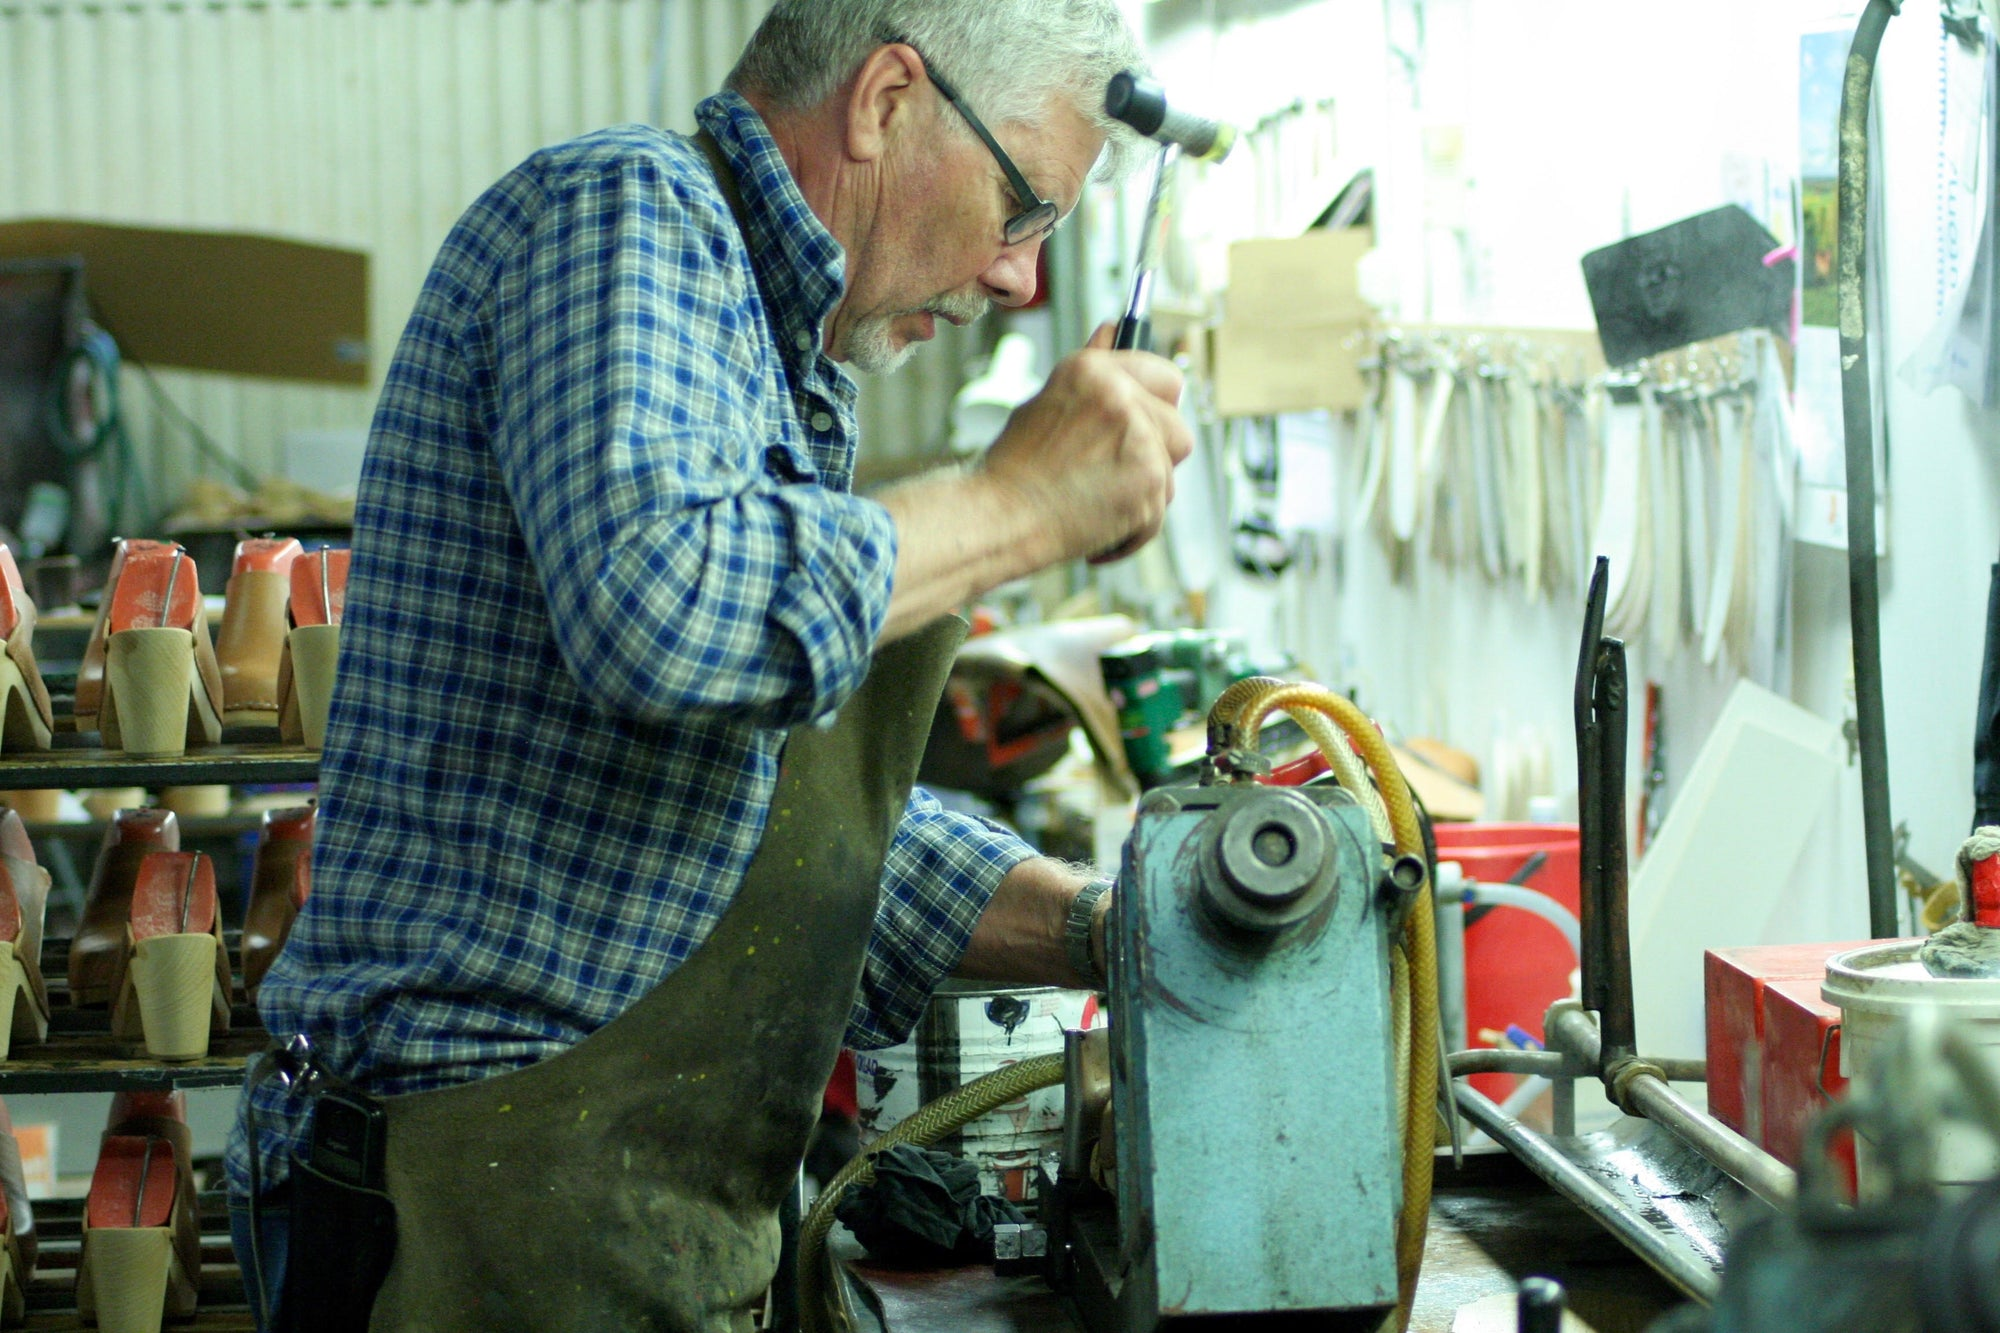 Behind the Scenes: Sandgrens Clogs Factory Tour